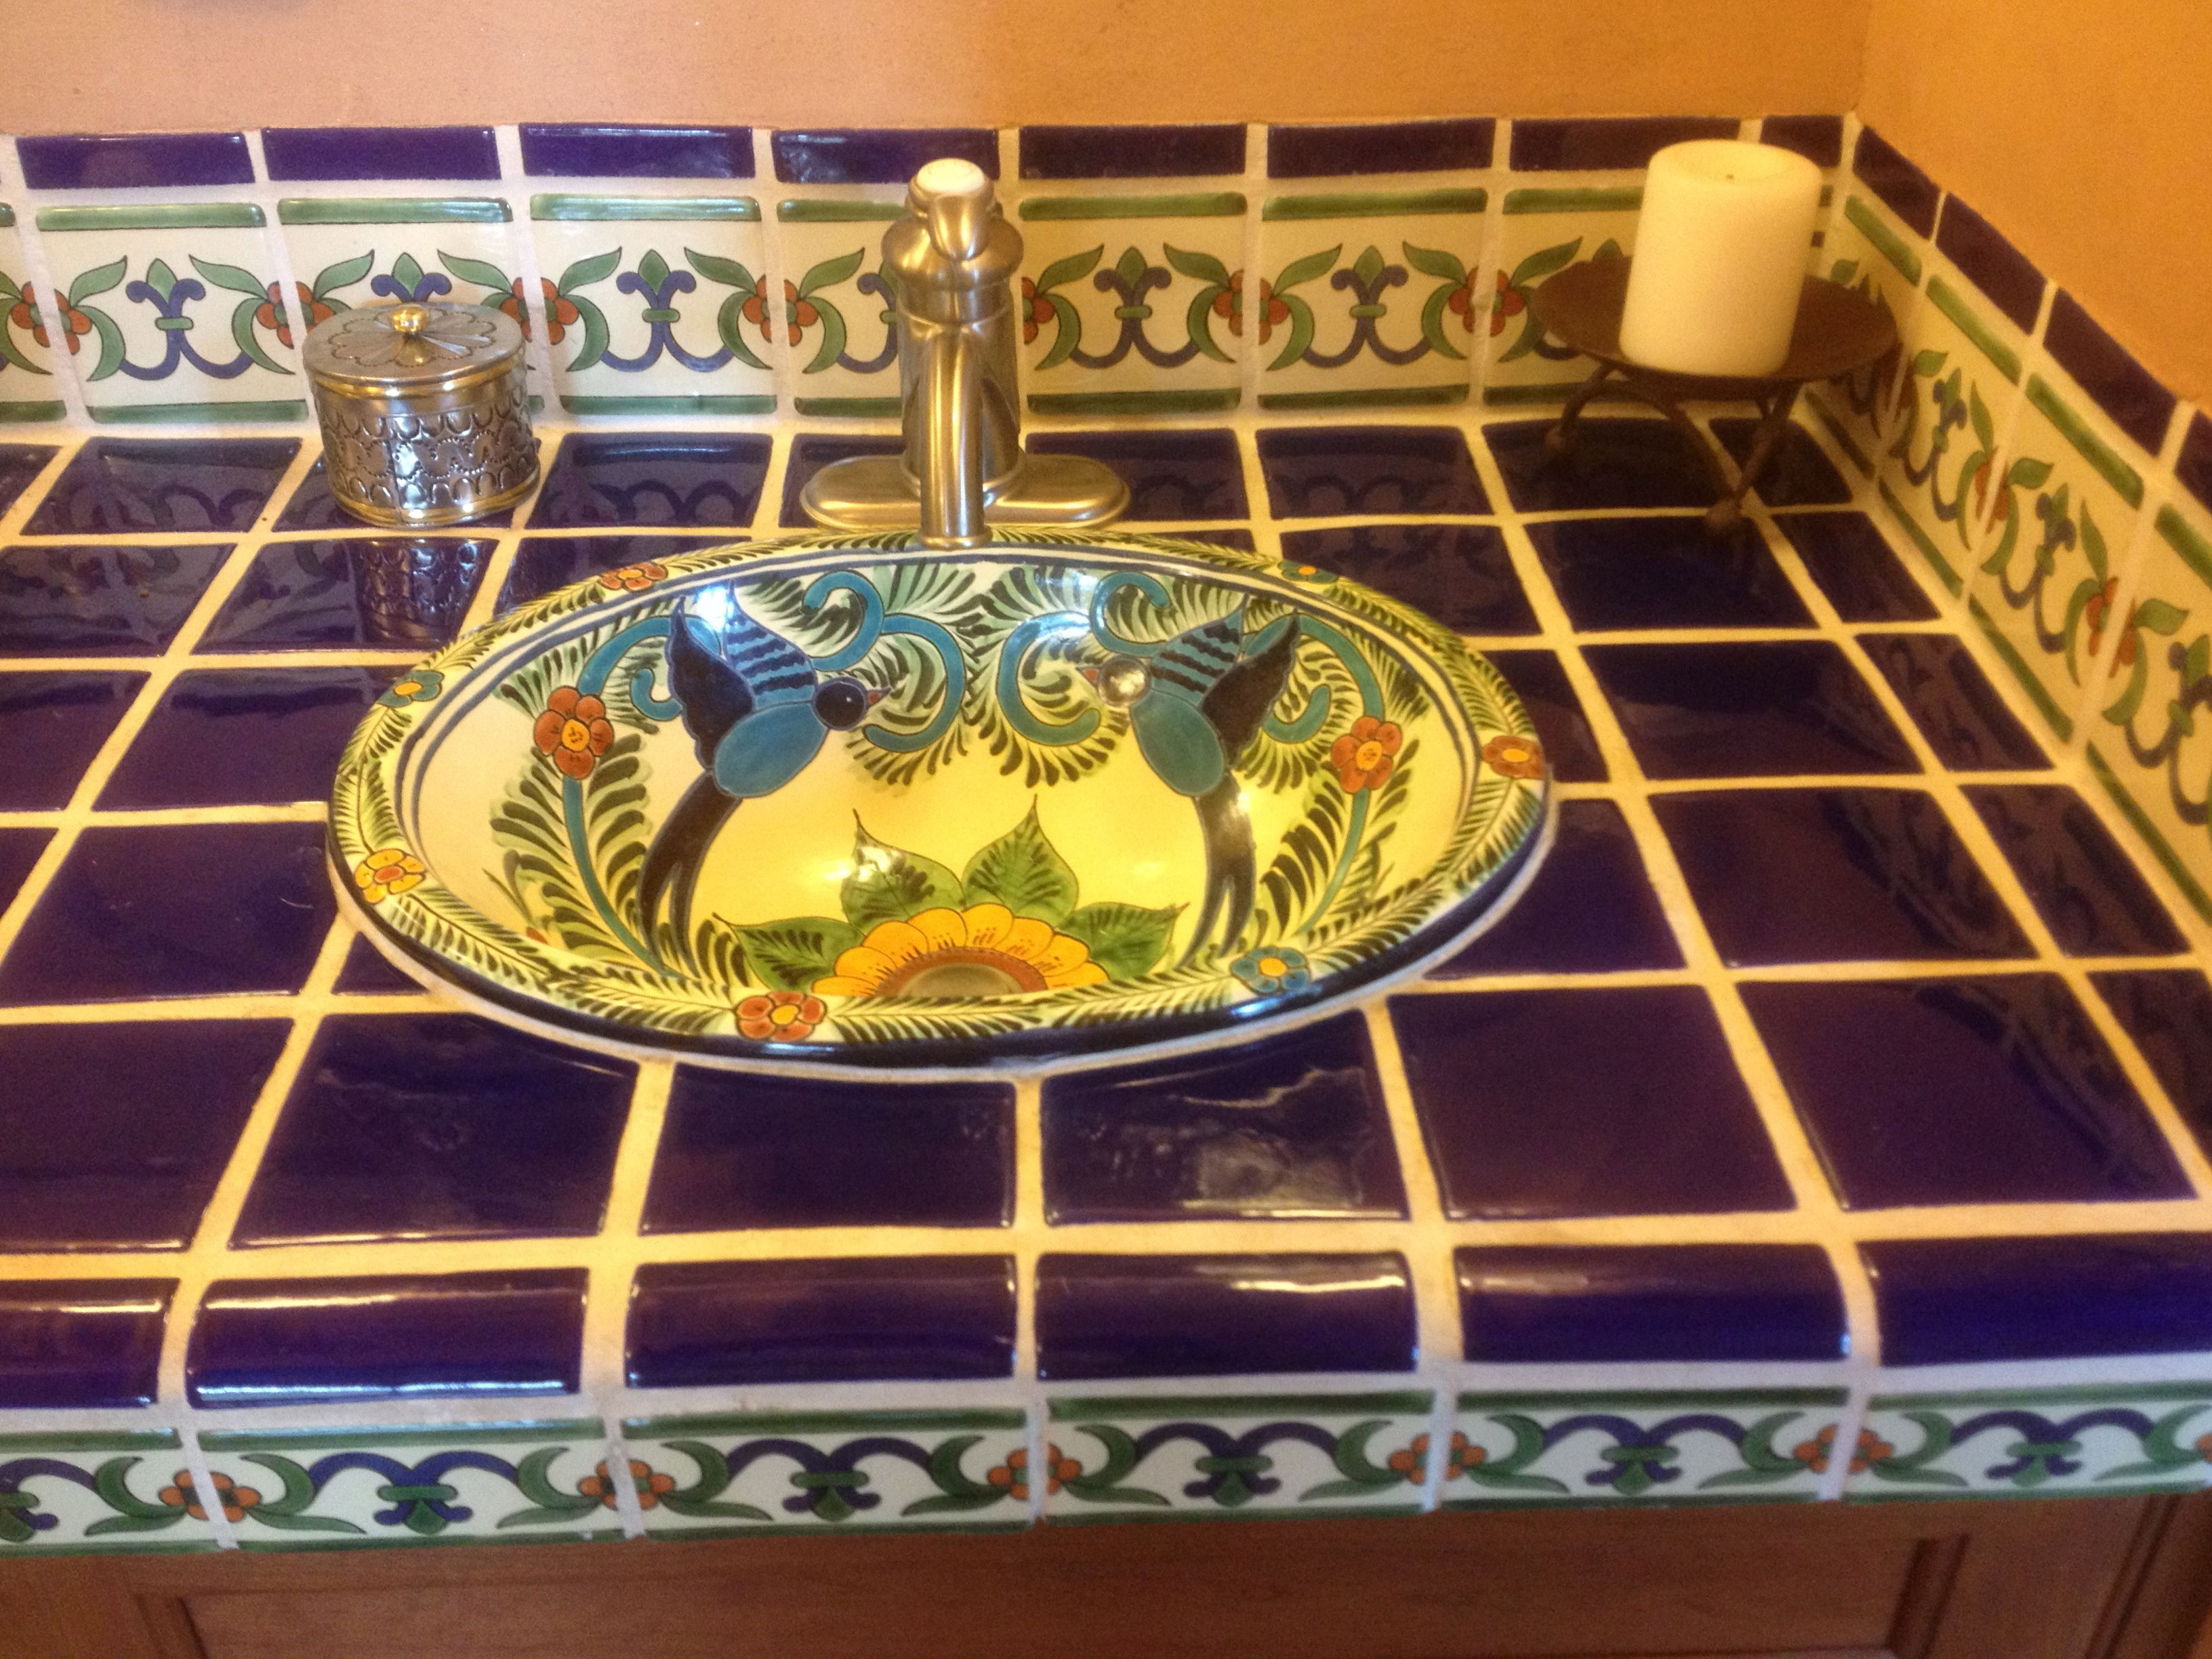 Superb Ideas For Using Mexican Tile In Your Kitchen Or Bath Countertop